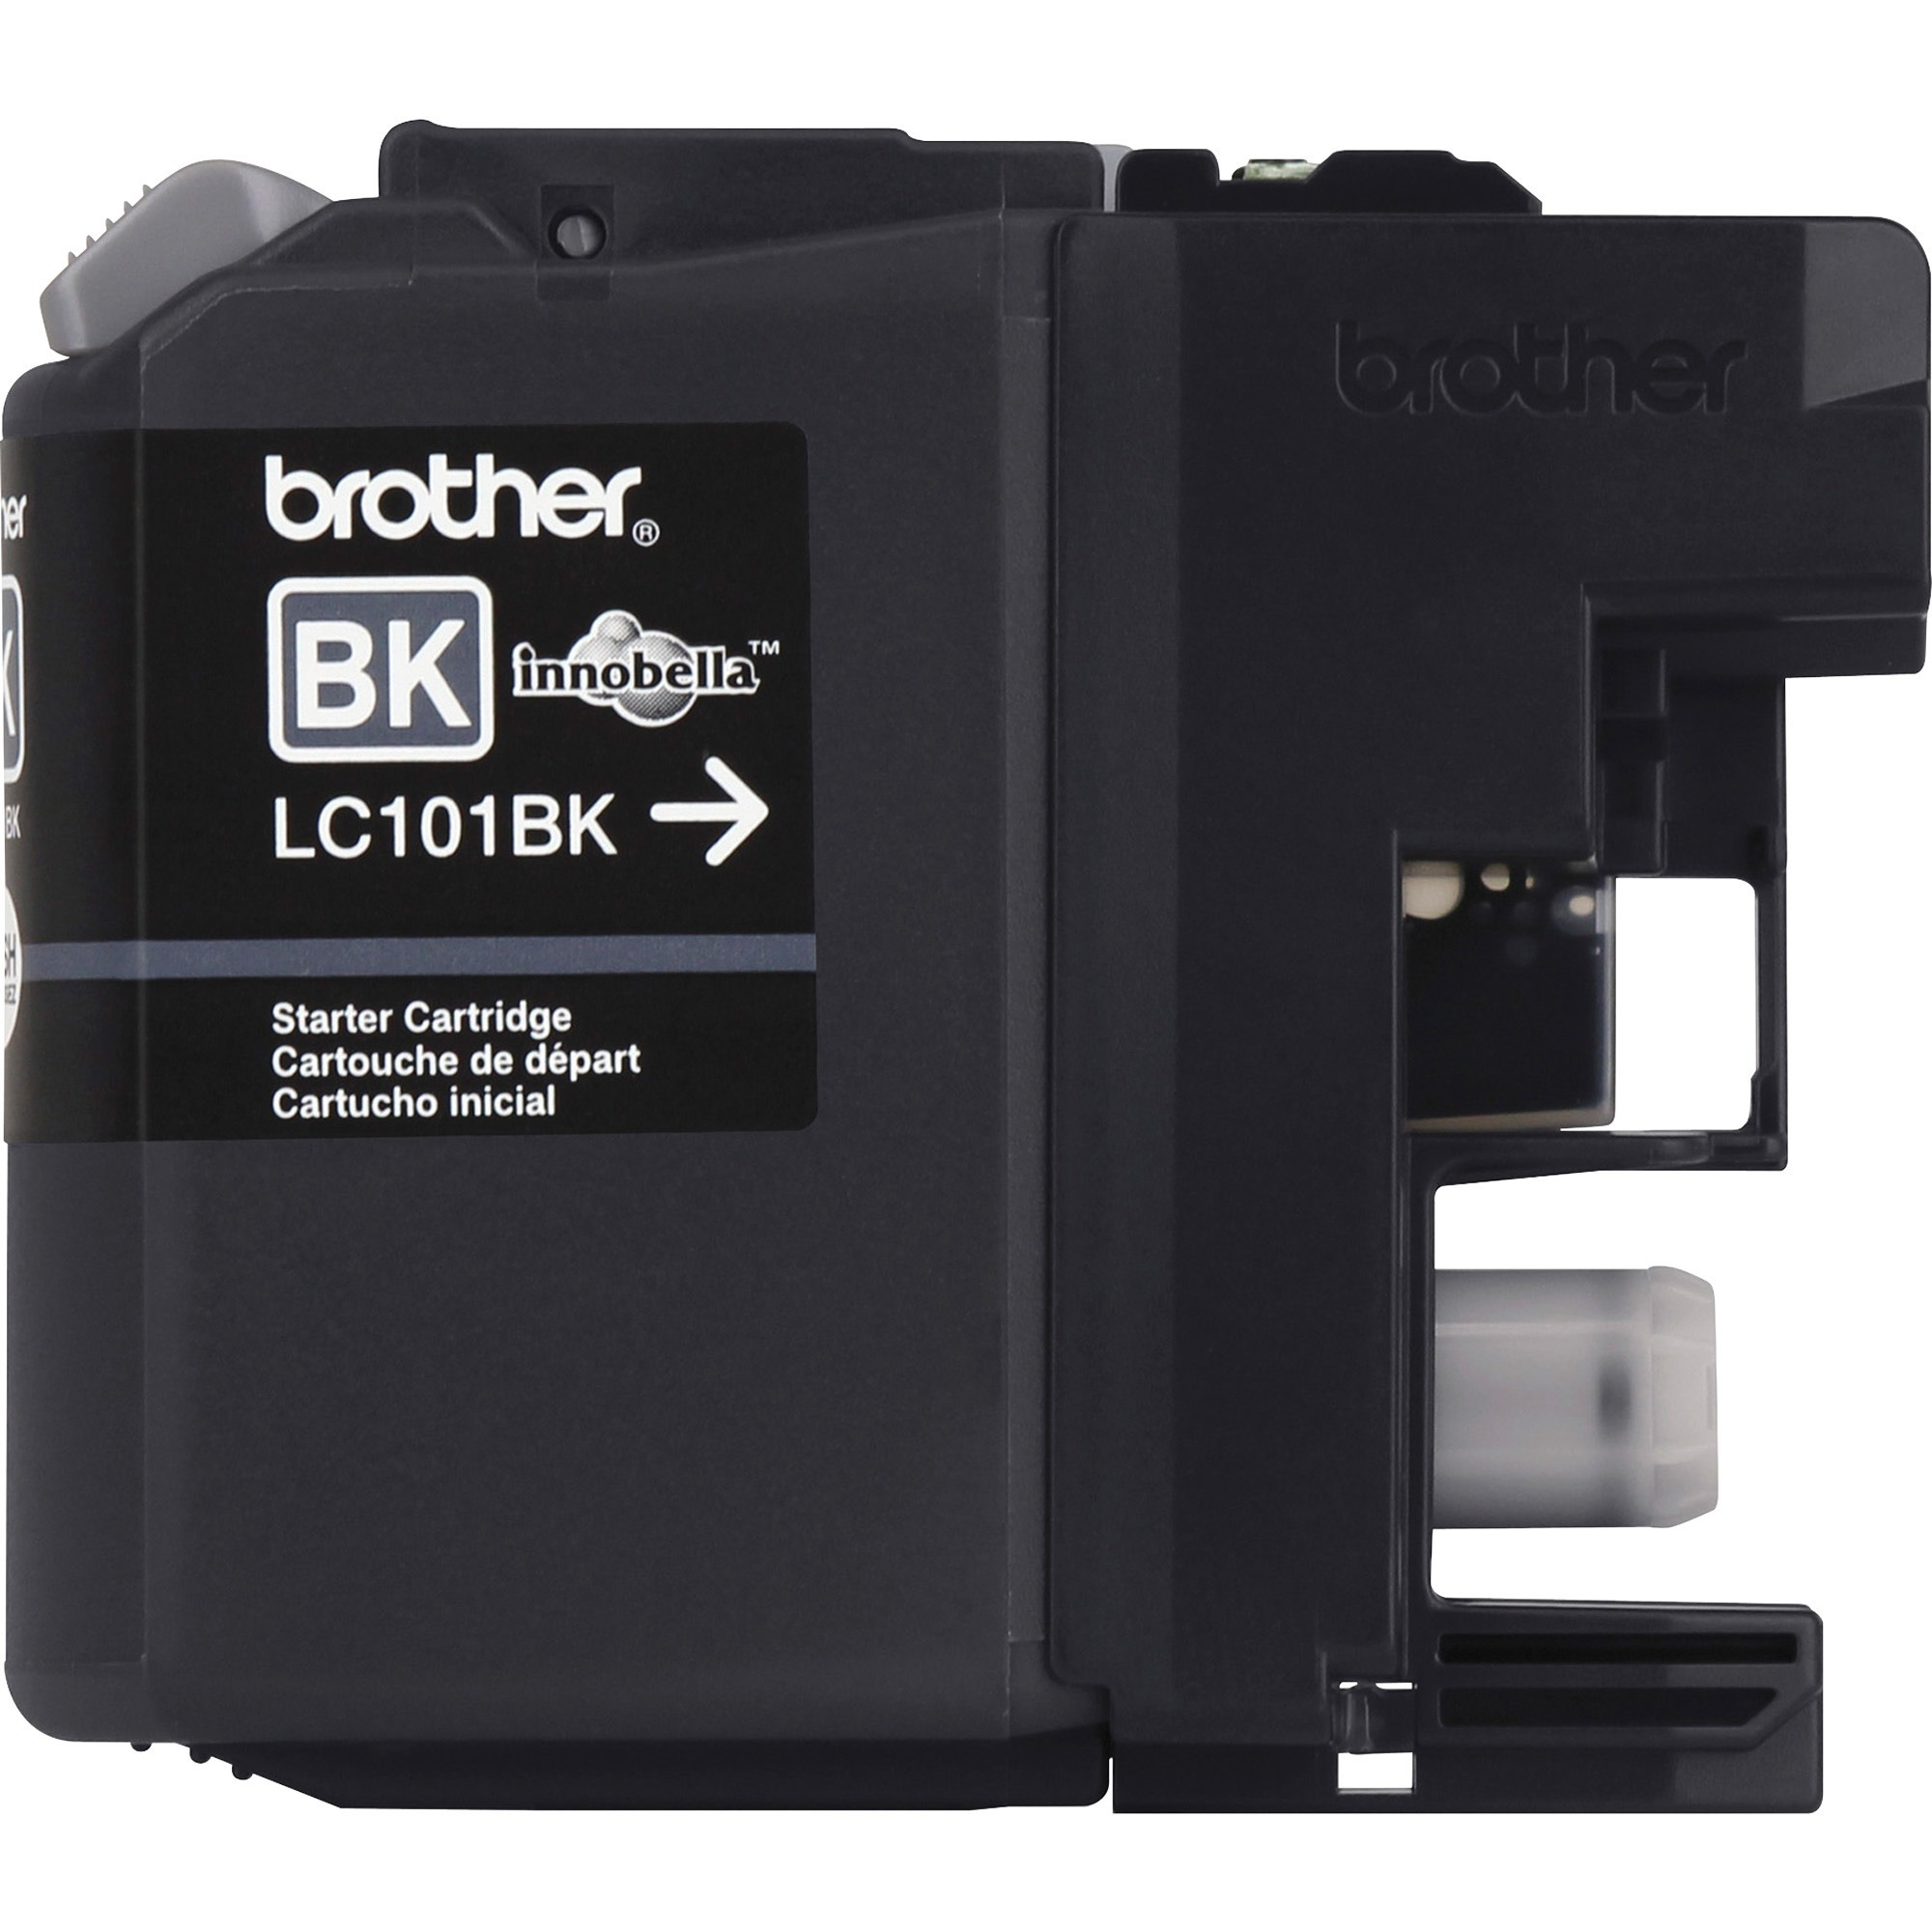 Brother Genuine Standard Yield Black Ink Cartridge, LC101BK, Replacement Black Ink, Page Yield Up To 300 Pages, LC101